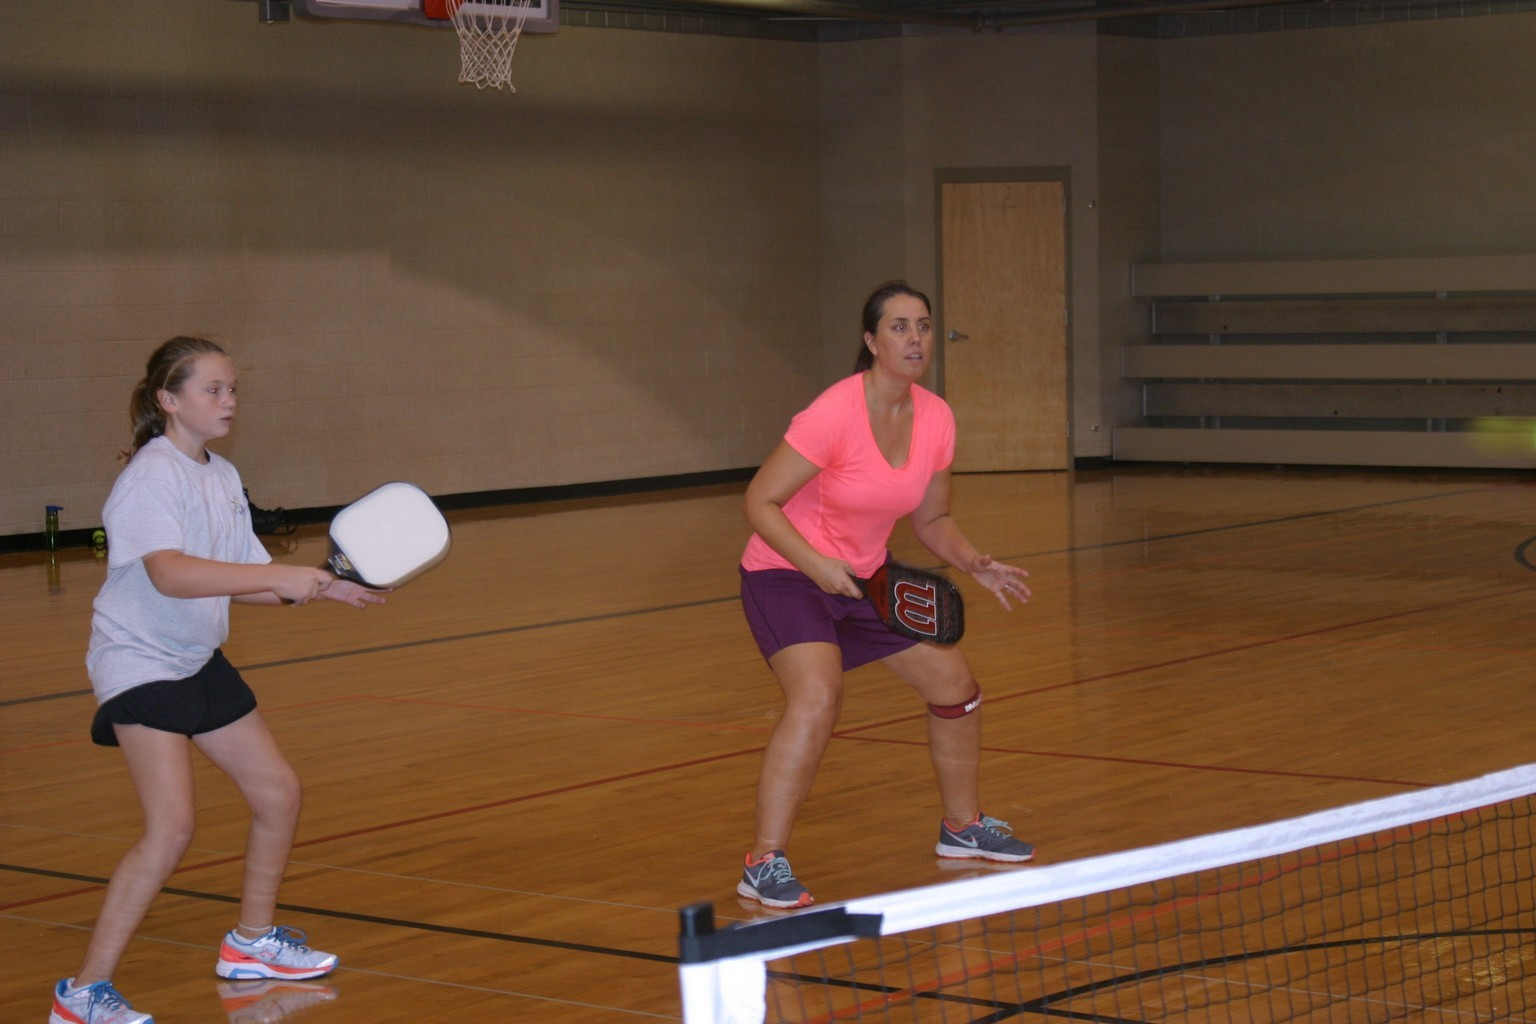 trussville pickleball, birmingham pickleball, pickleball, family pickleball, crosspoint church, crosspoint church pickleball, trussville, pickleball demonstration